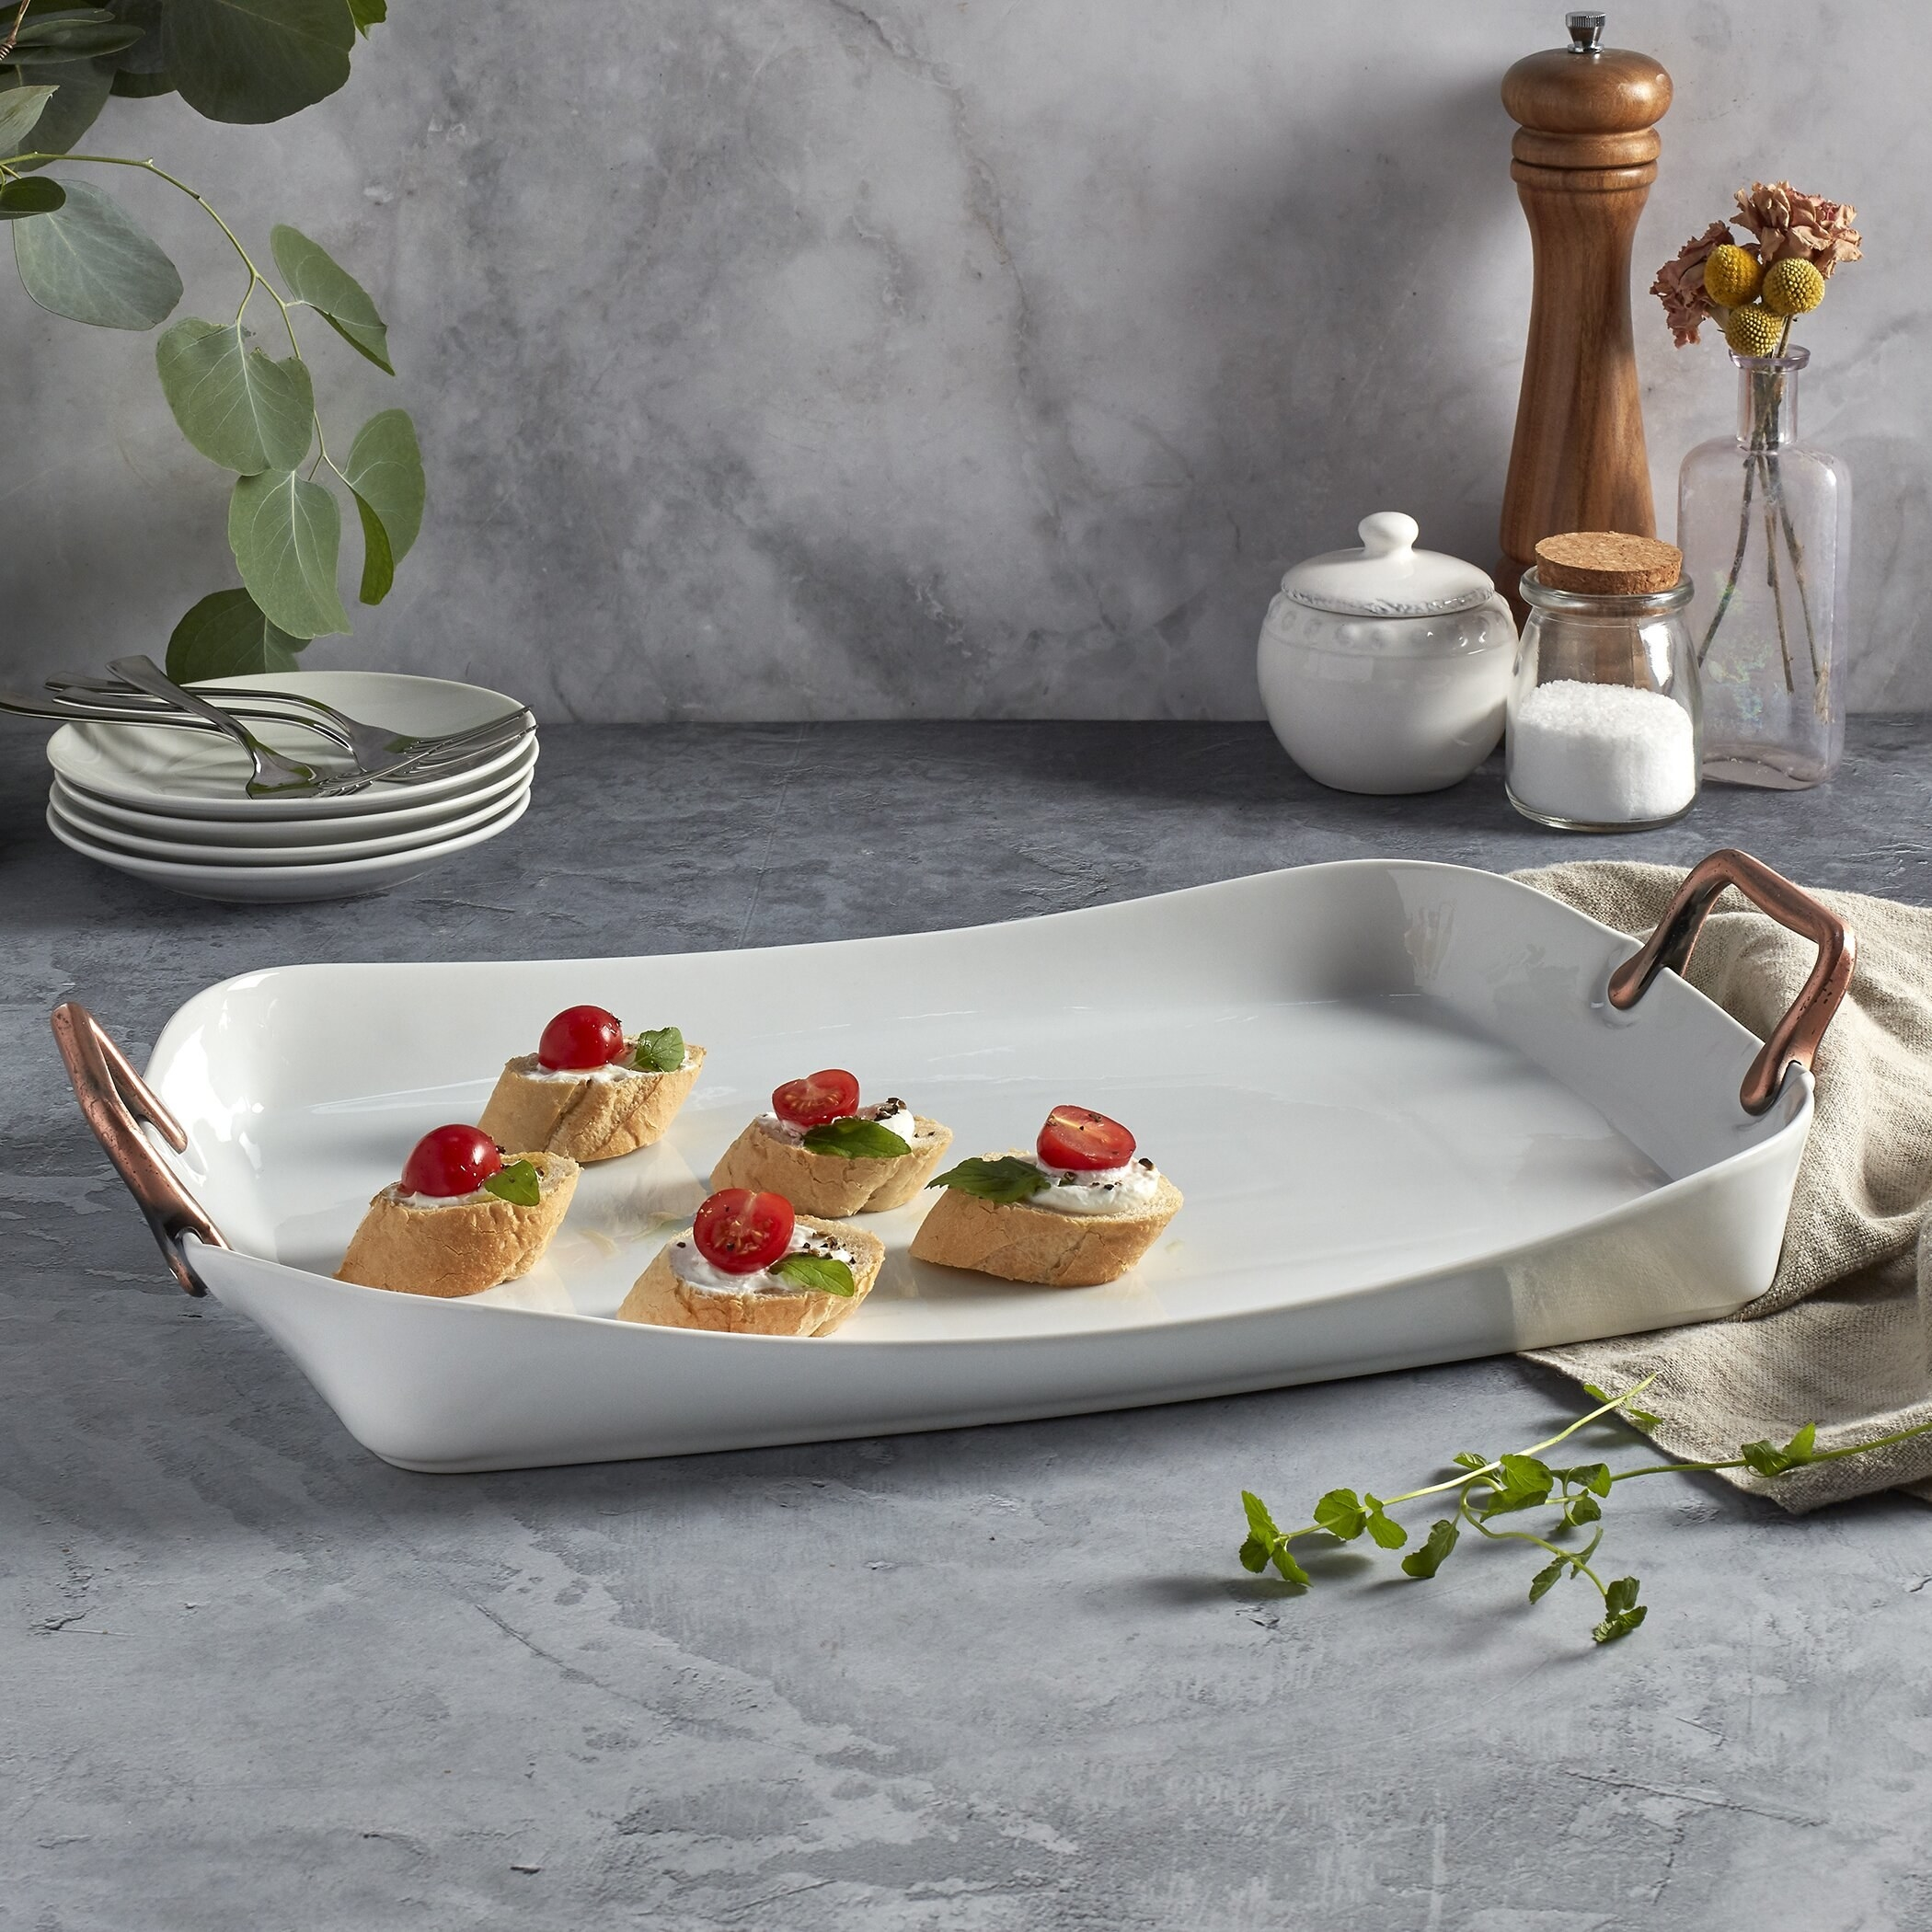 The white tray with copper handles with toast appetizers on display